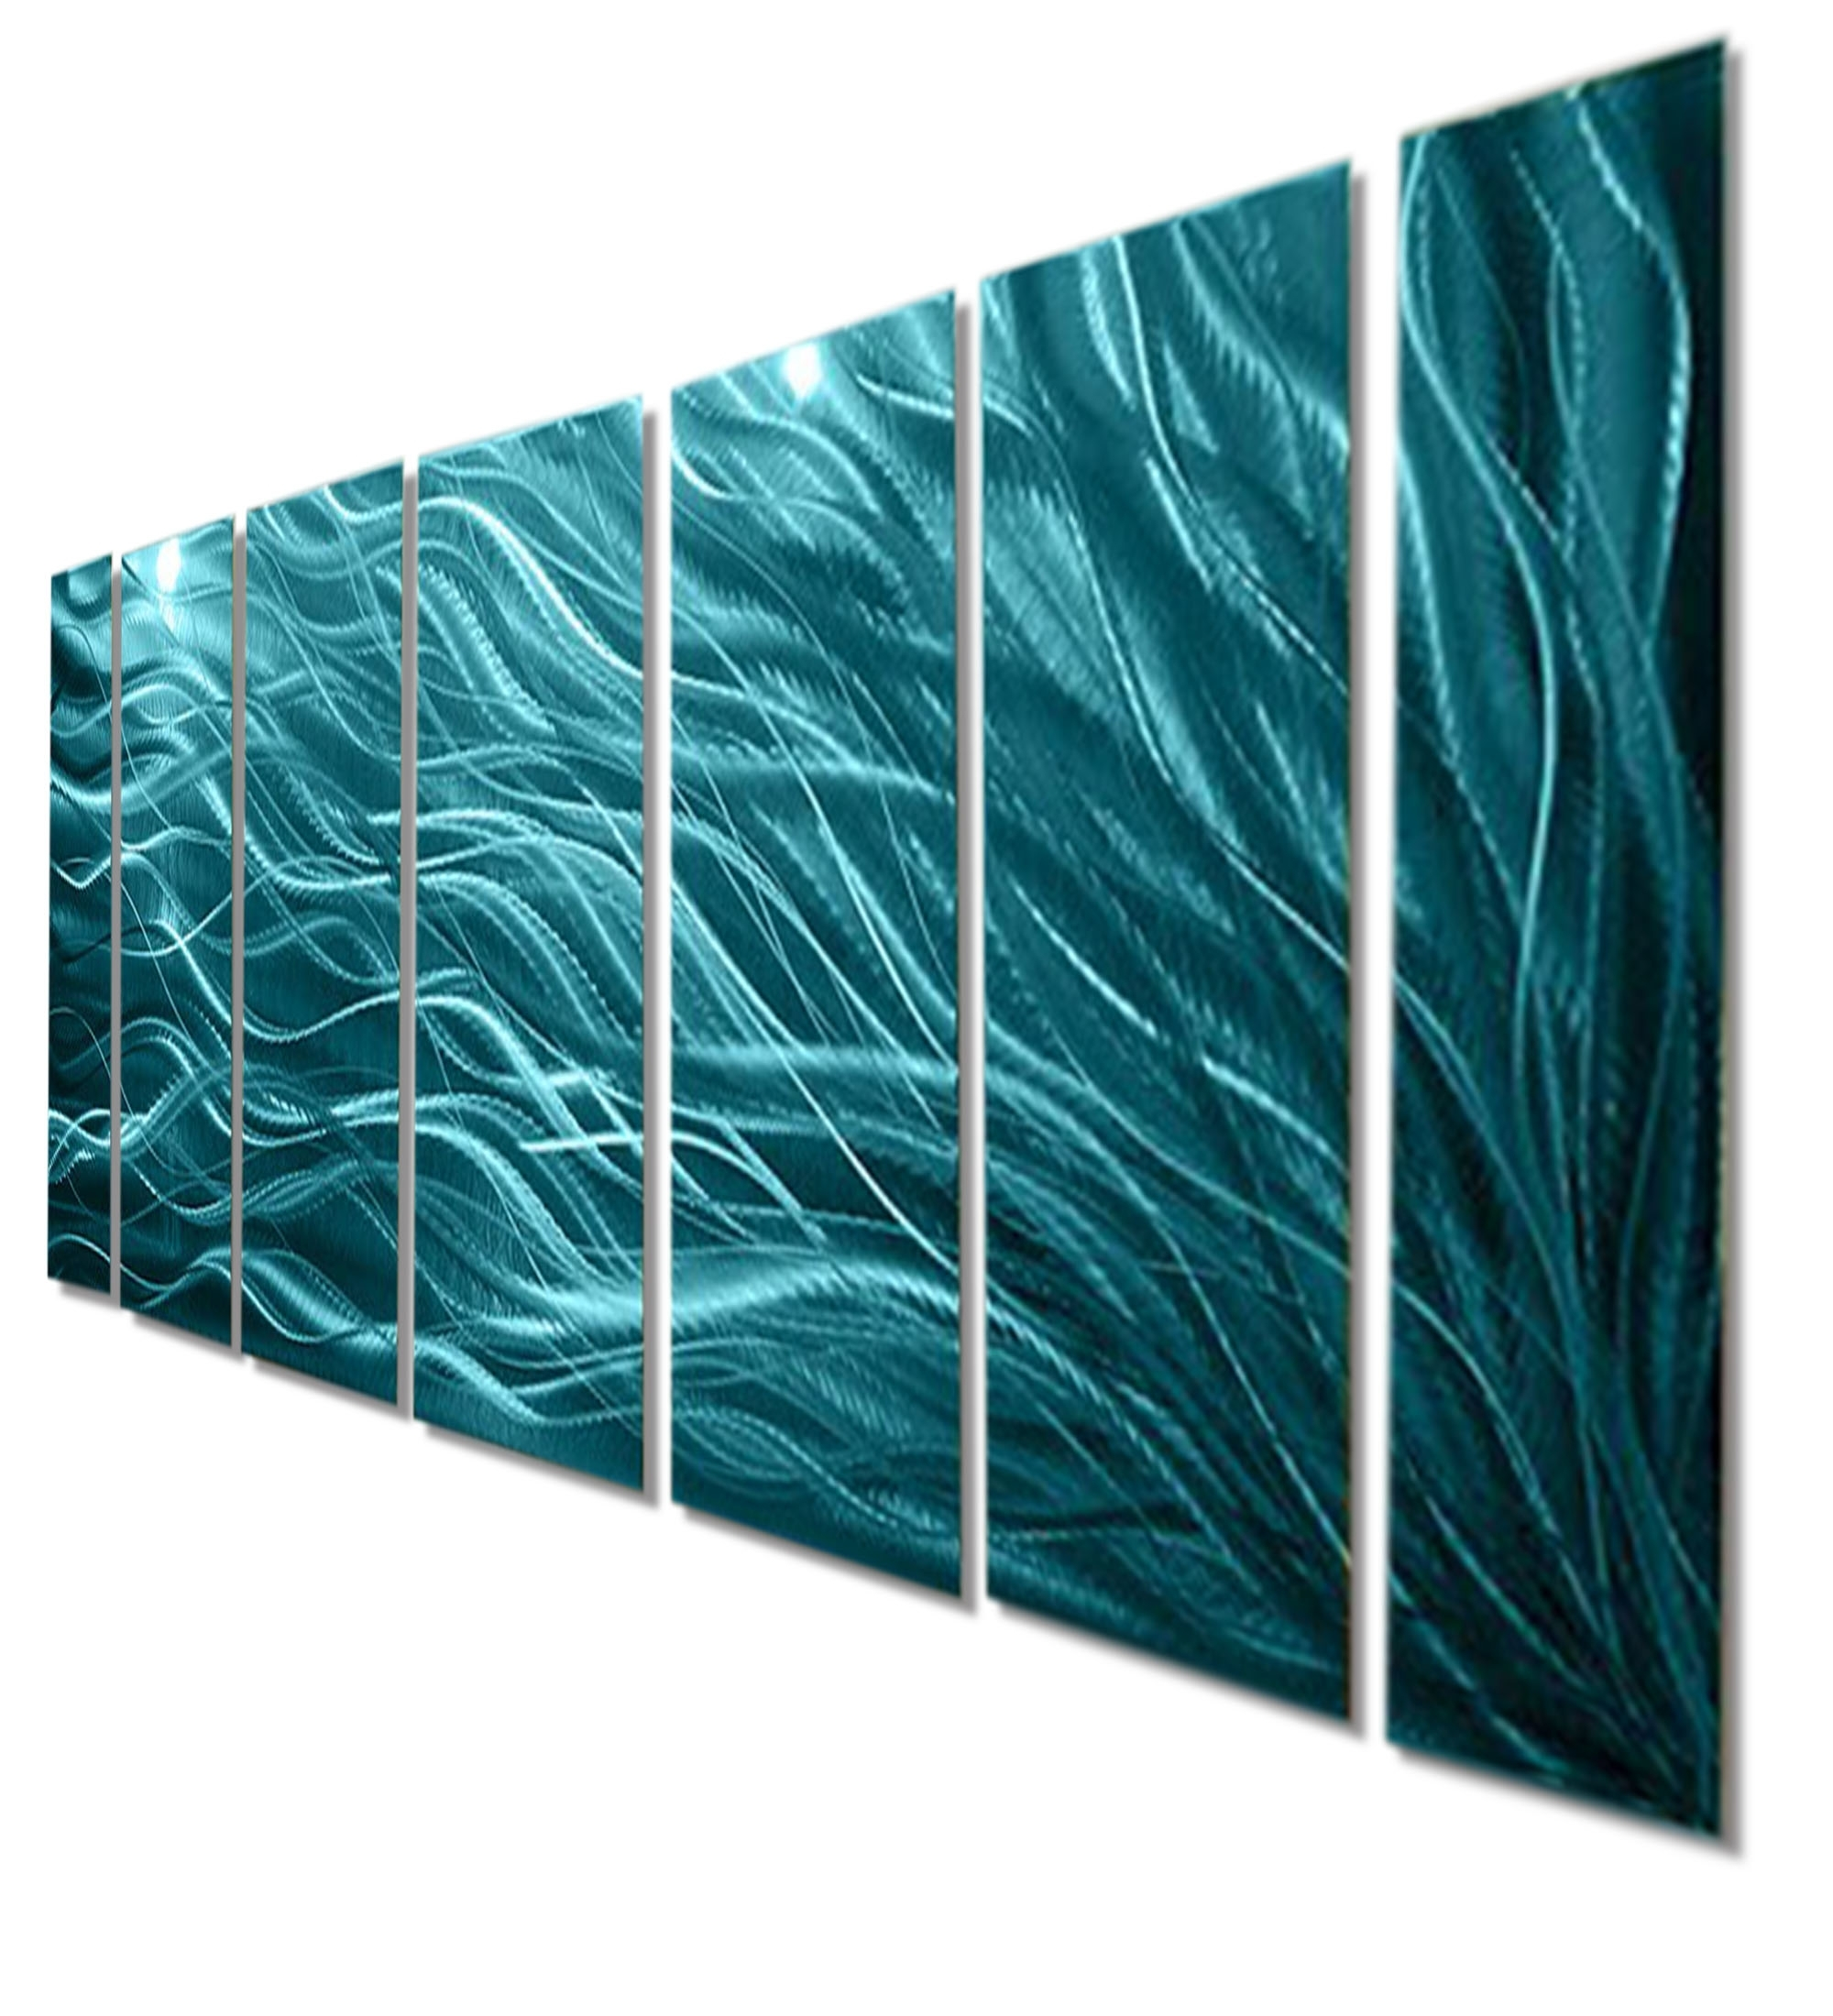 Latest Rays Of Hope Aqua – Large Modern Abstract Metal Wall Artjon Pertaining To Large Contemporary Wall Art (View 6 of 15)